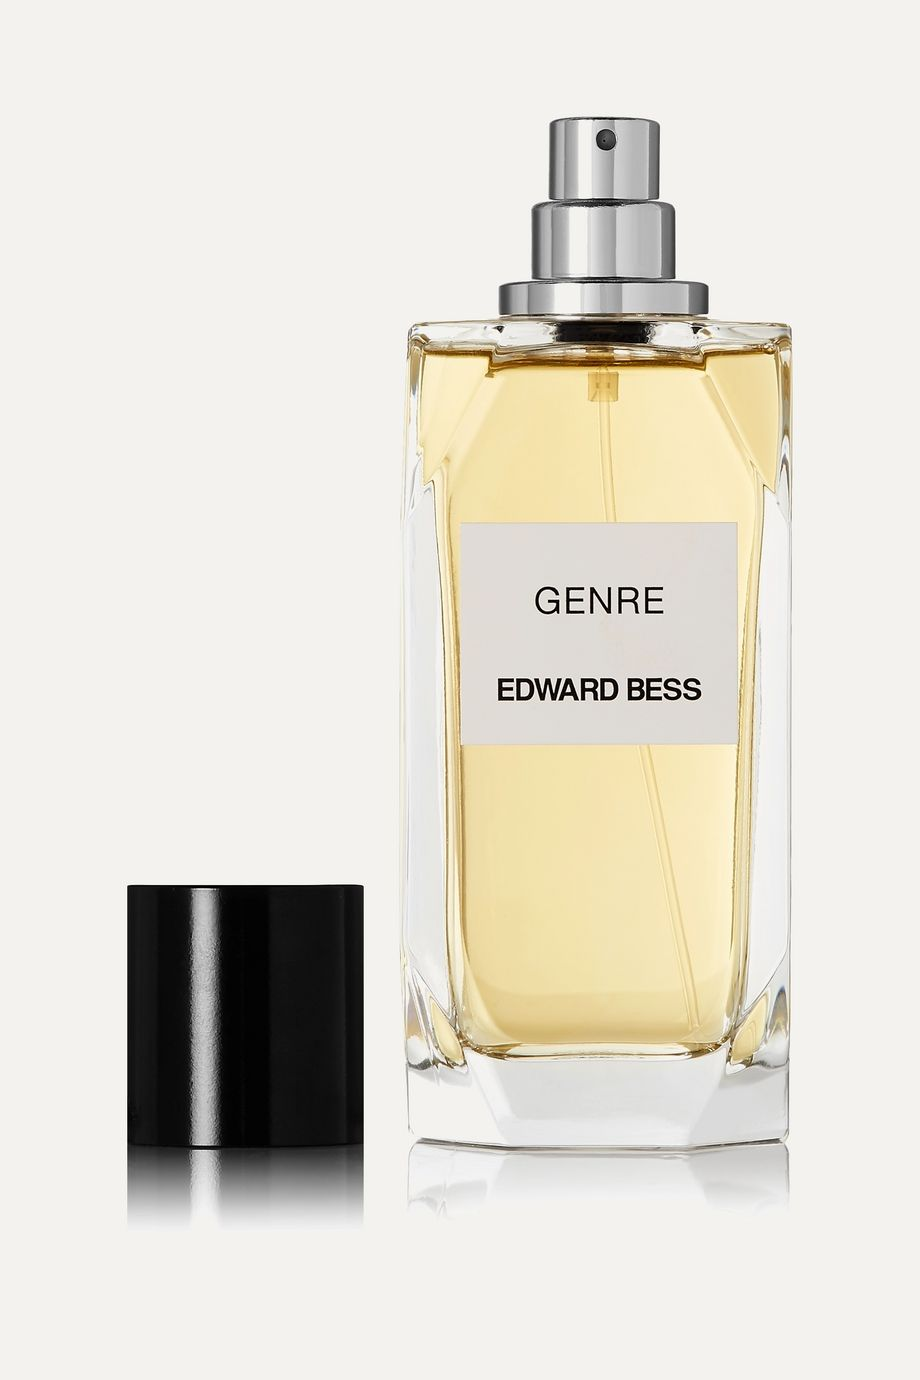 Edward Bess Genre Eau de Parfum - Frankincense, Leather & Suede, 100ml